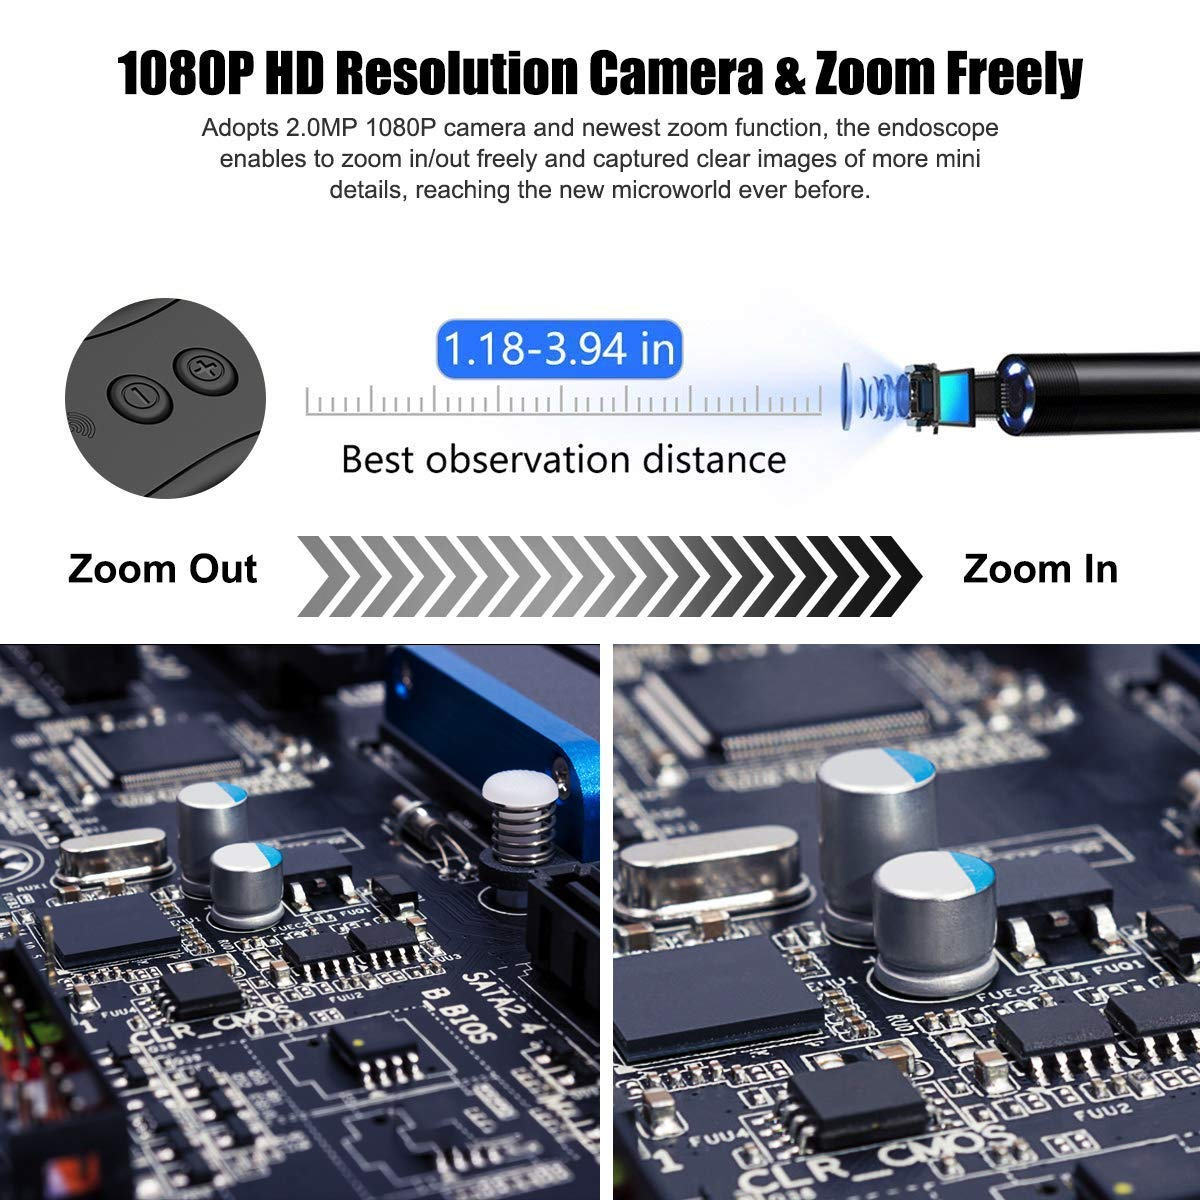 5M KZYEE 2.0 MP WiFi Endoscope 5.5mm 1080P HD Wireless Borescope Inspection Camera 2200mAh Battery Digital Zoom Reset Semi Rigid Cable for Smartphone Android iPhone